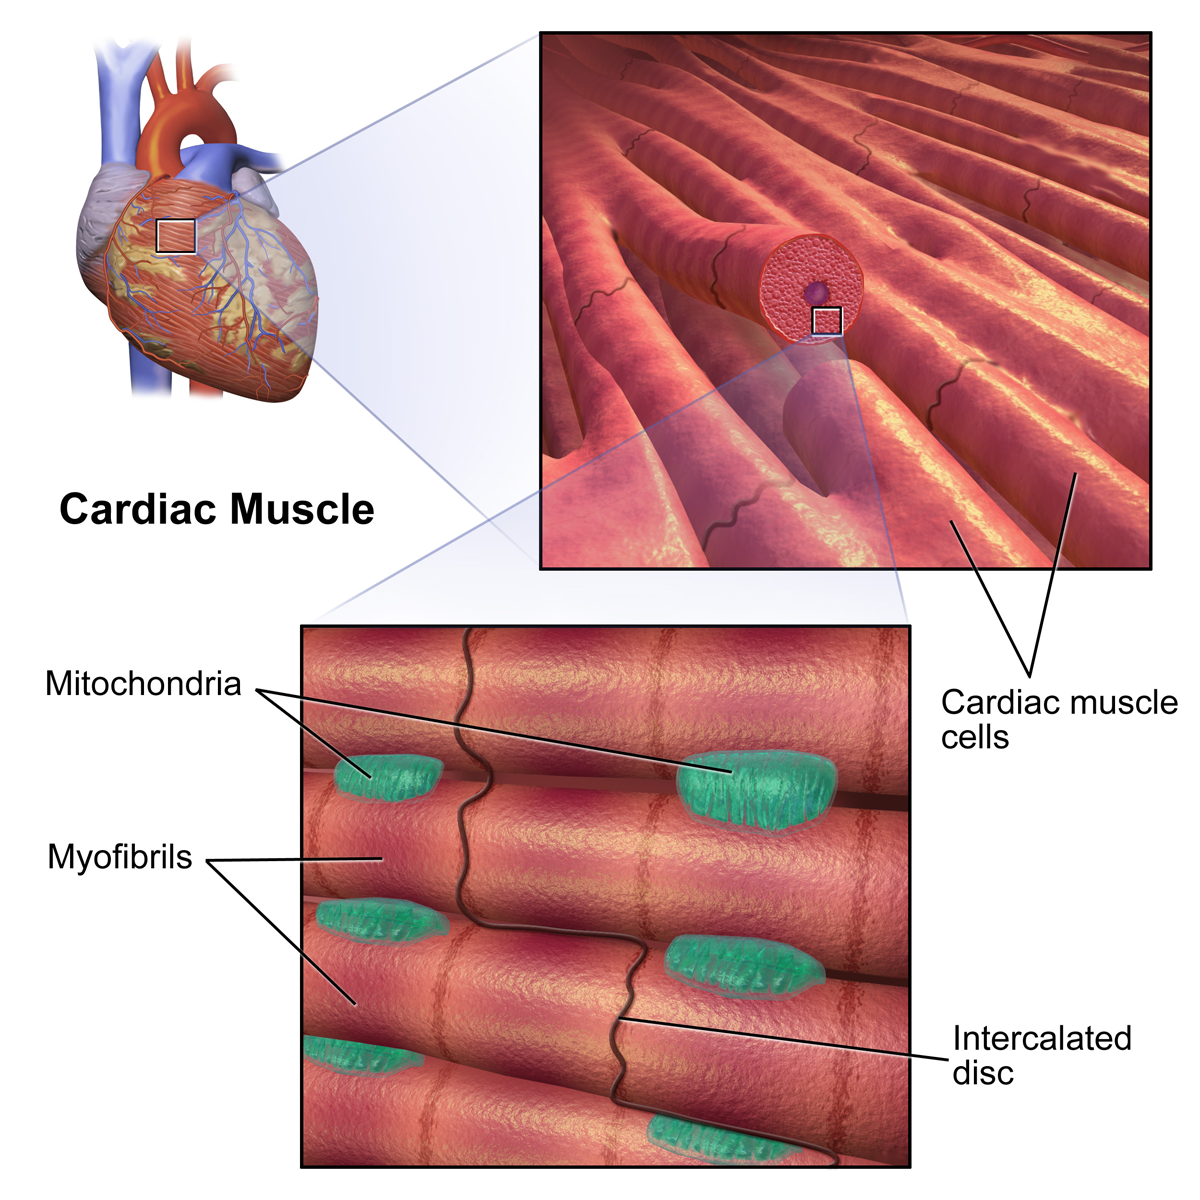 https://upload.wikimedia.org/wikipedia/commons/7/73/Cardiac_Muscle.png